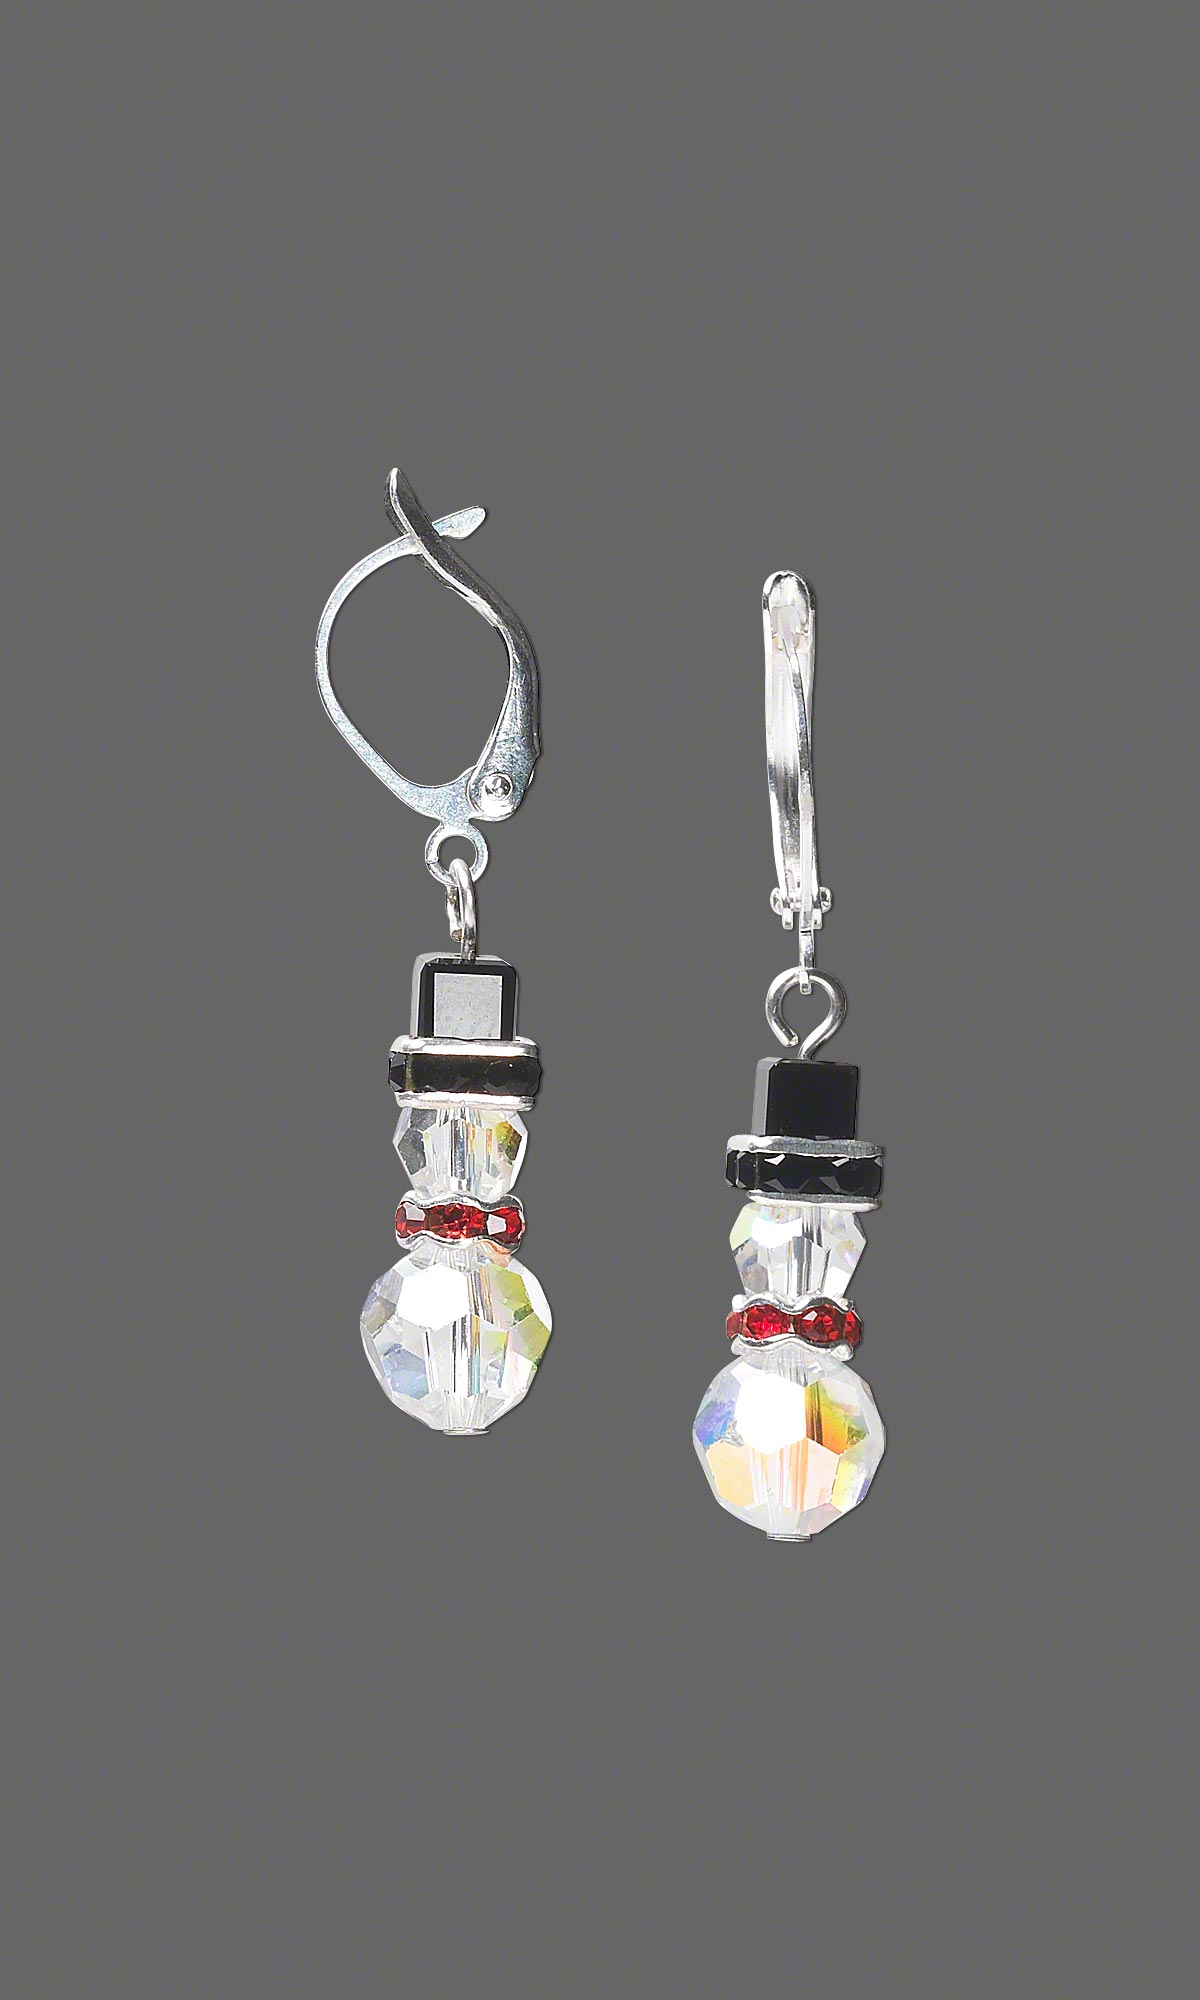 Jewelry Design Snowman Earrings With Swarovski Crystal